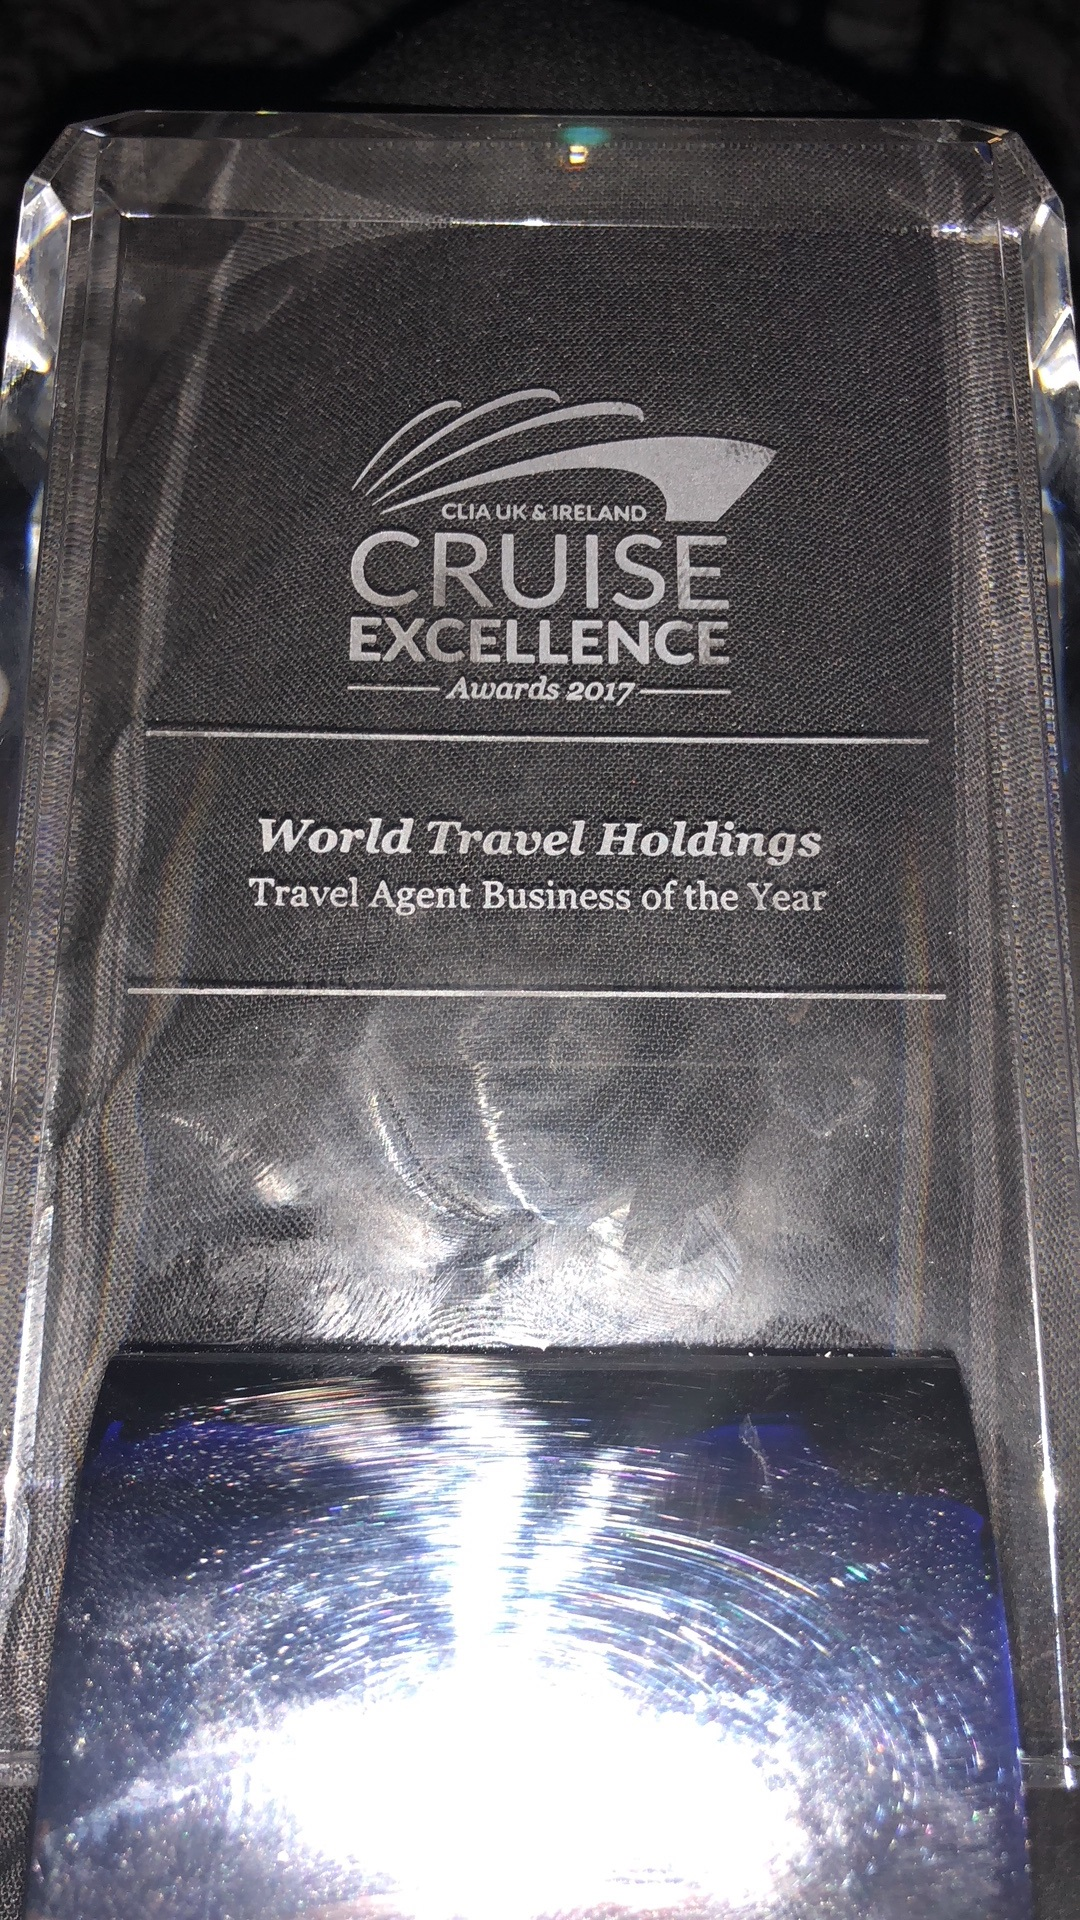 Travel Agent Business of the Year award at CLIA Cruise Excellence 2017